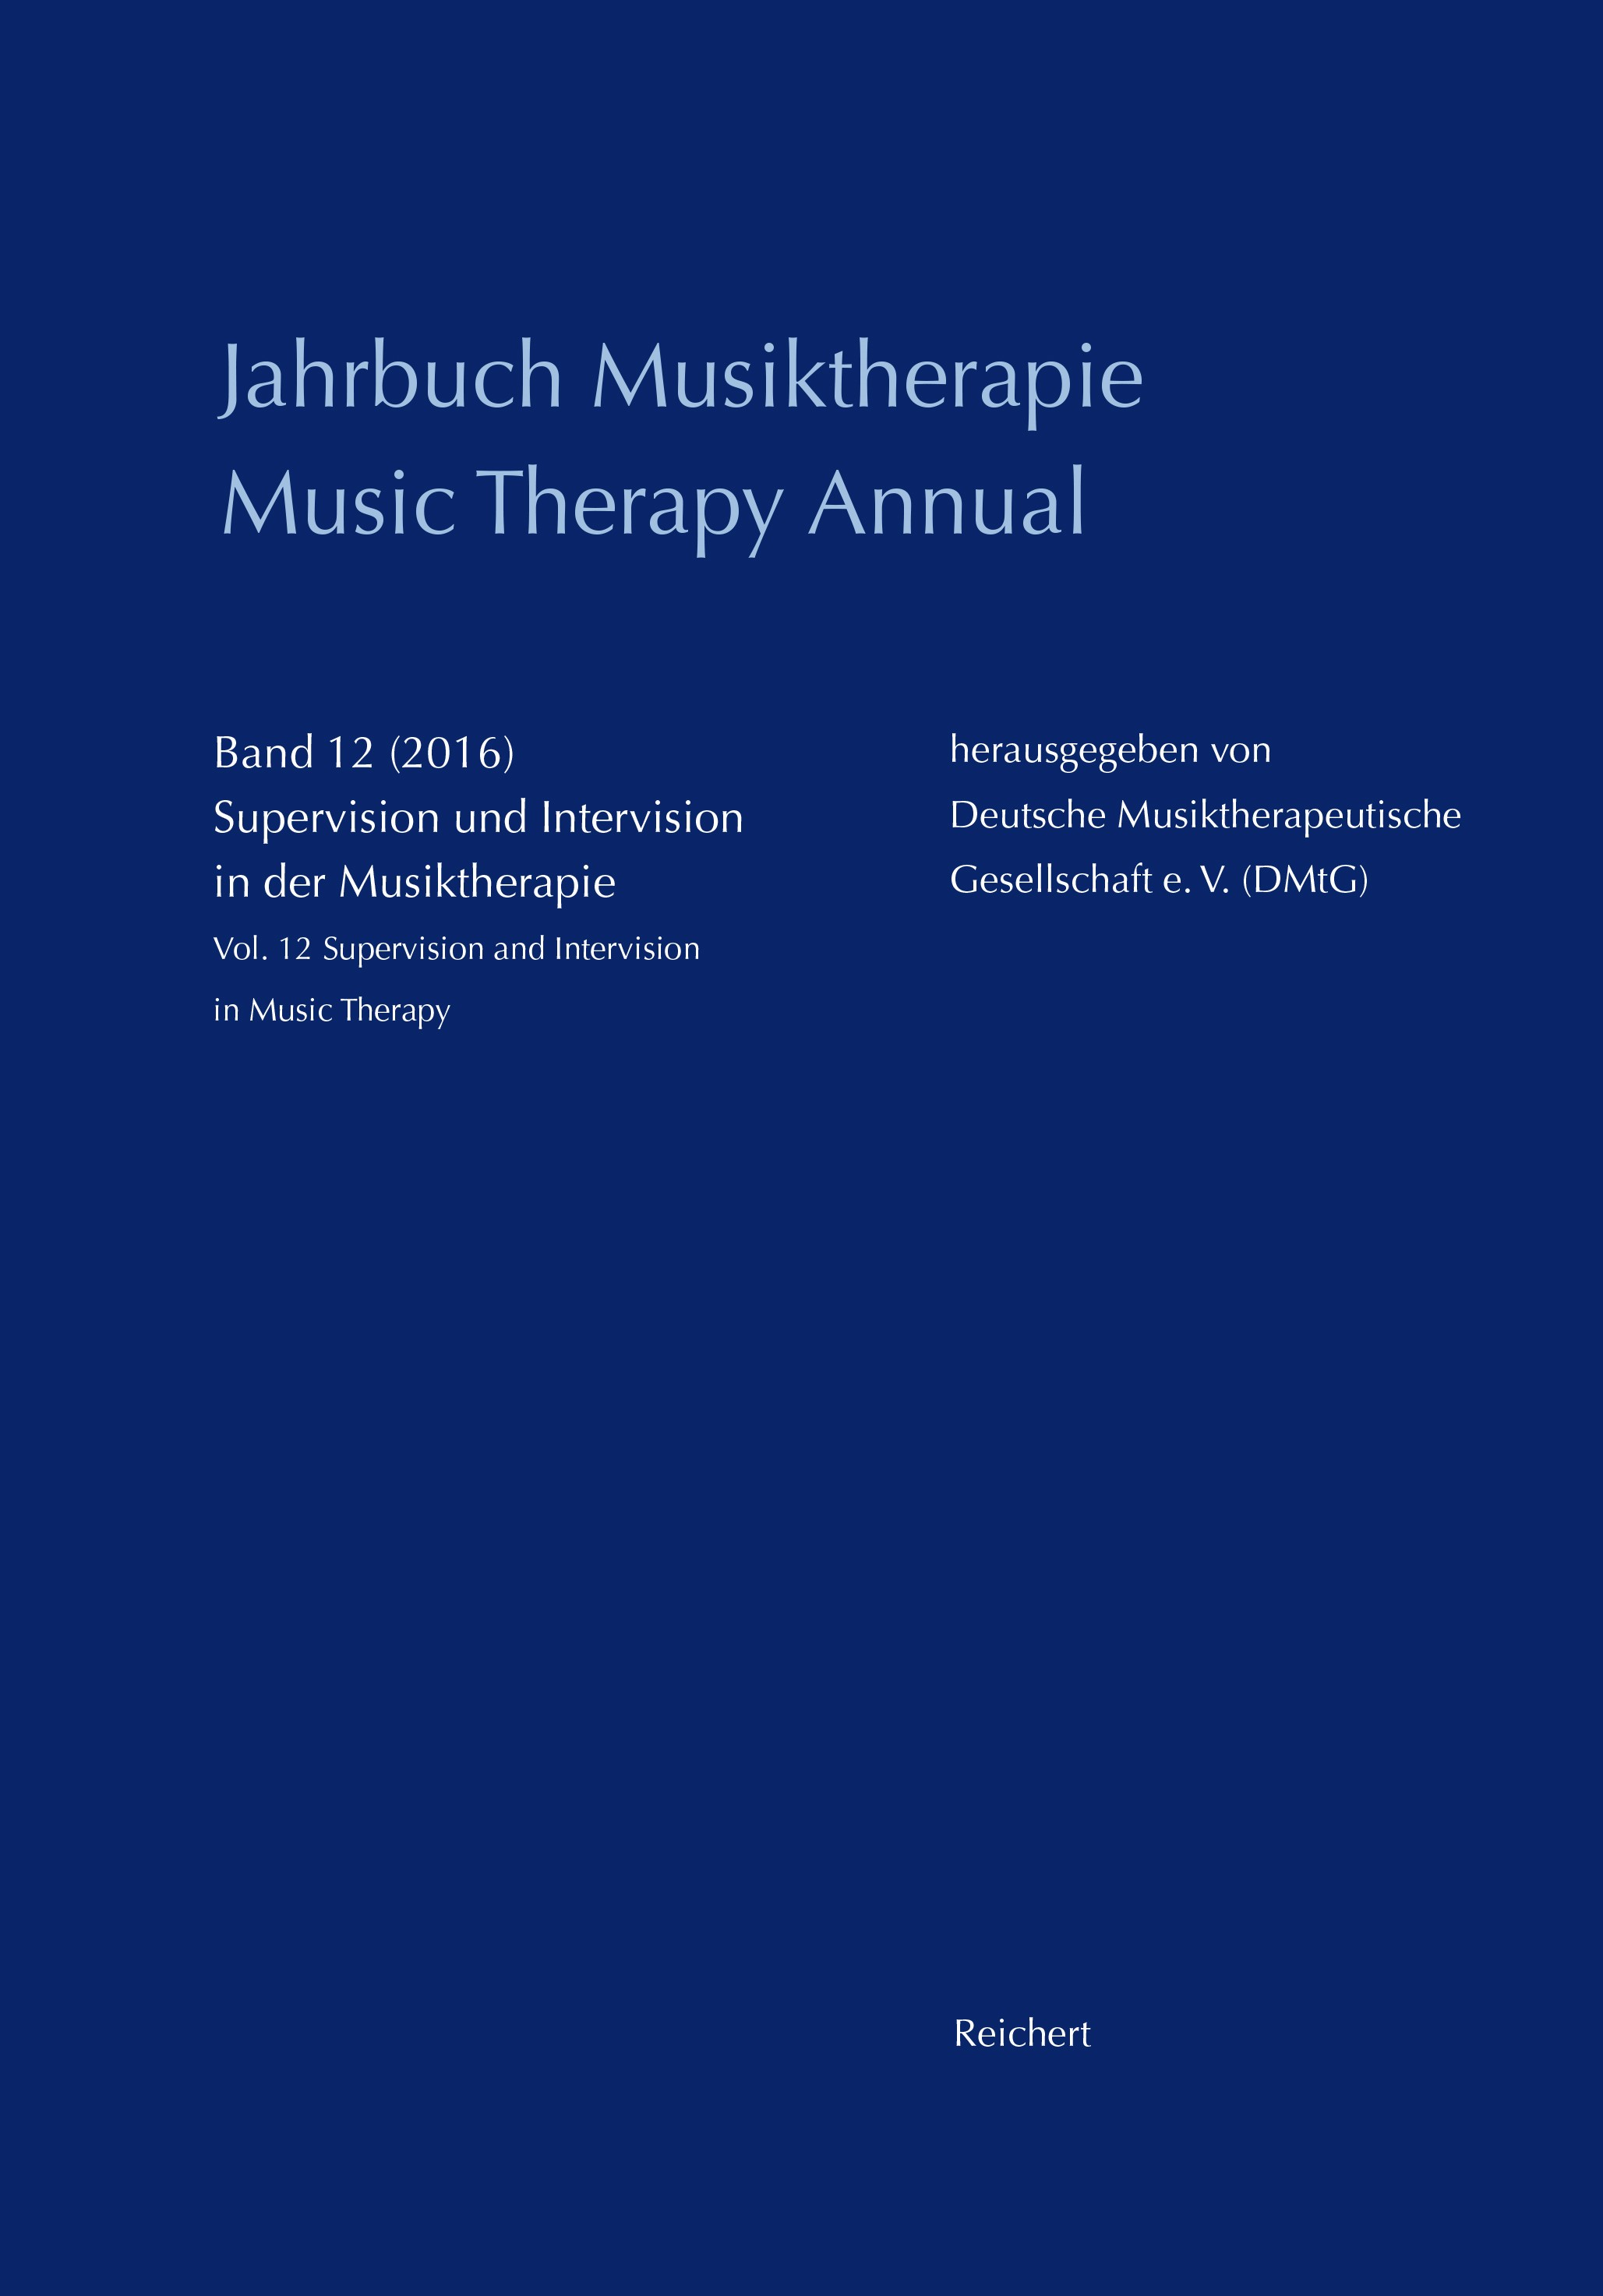 Jahrbuch Musiktherapie / Music Therapy Annual, 2016 | Buch (Cover)